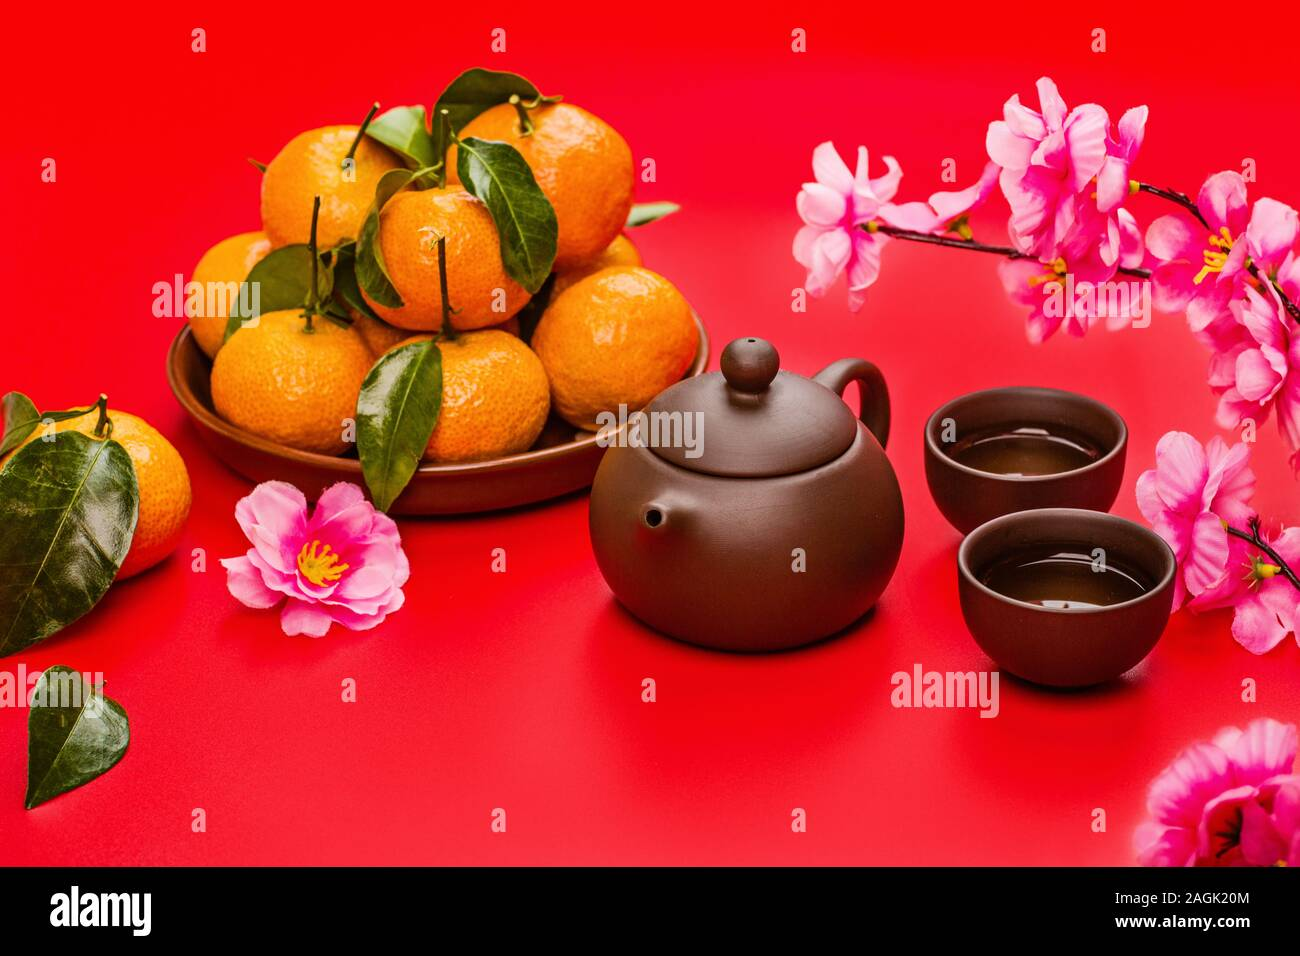 accessories of chinese new year 2020 and decorations lunar new year festival concept background stock photo alamy https www alamy com accessories of chinese new year 2020 and decorations lunar new year festival concept background image337250164 html